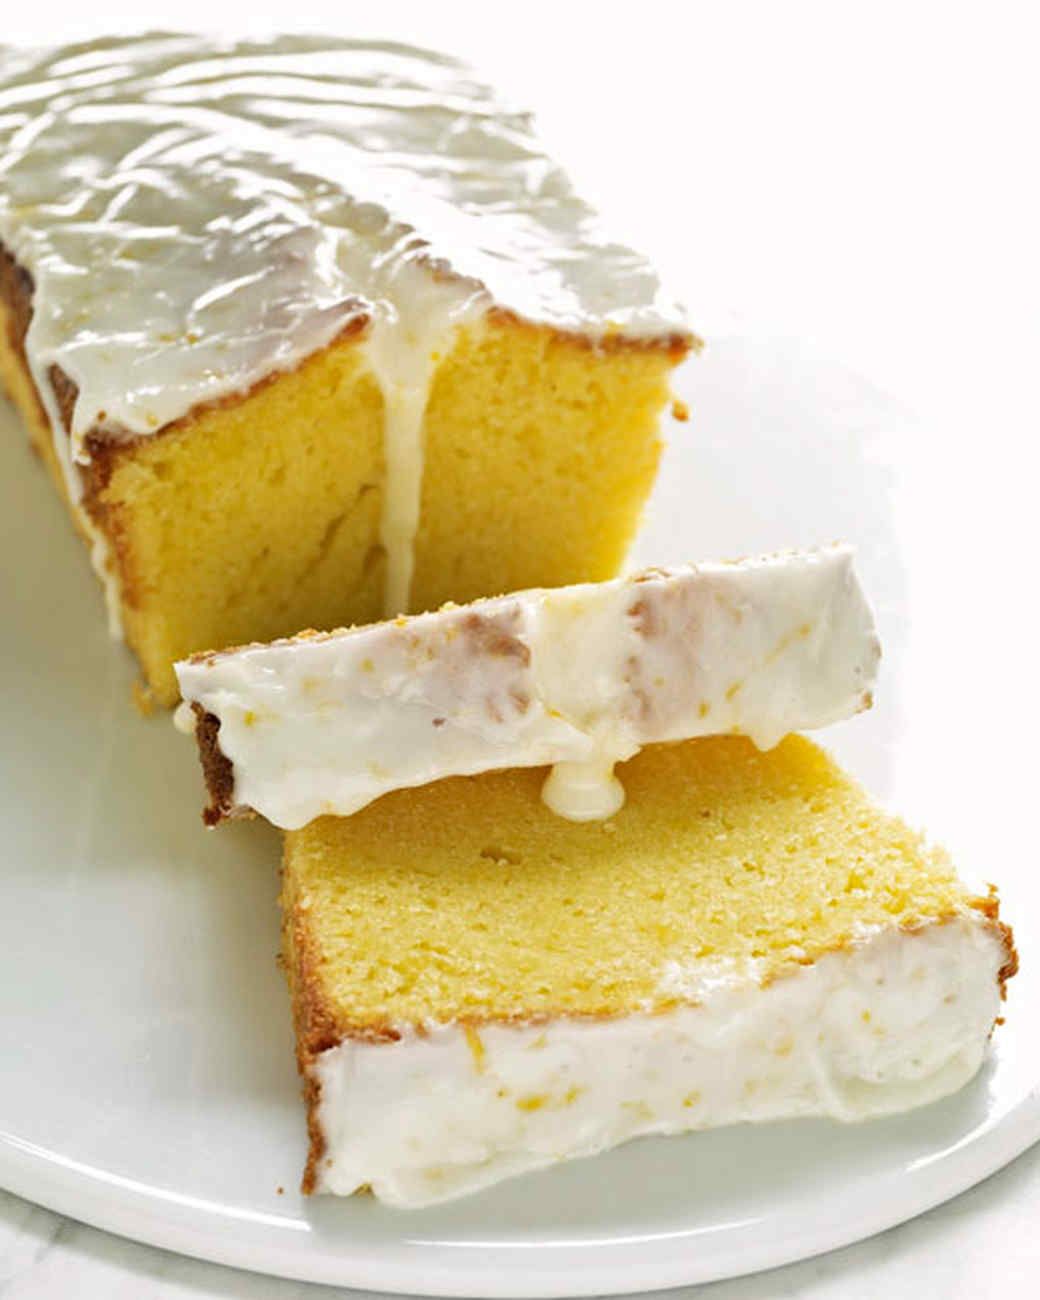 Lemon Cream Cheese Frosting For Bundt Cake